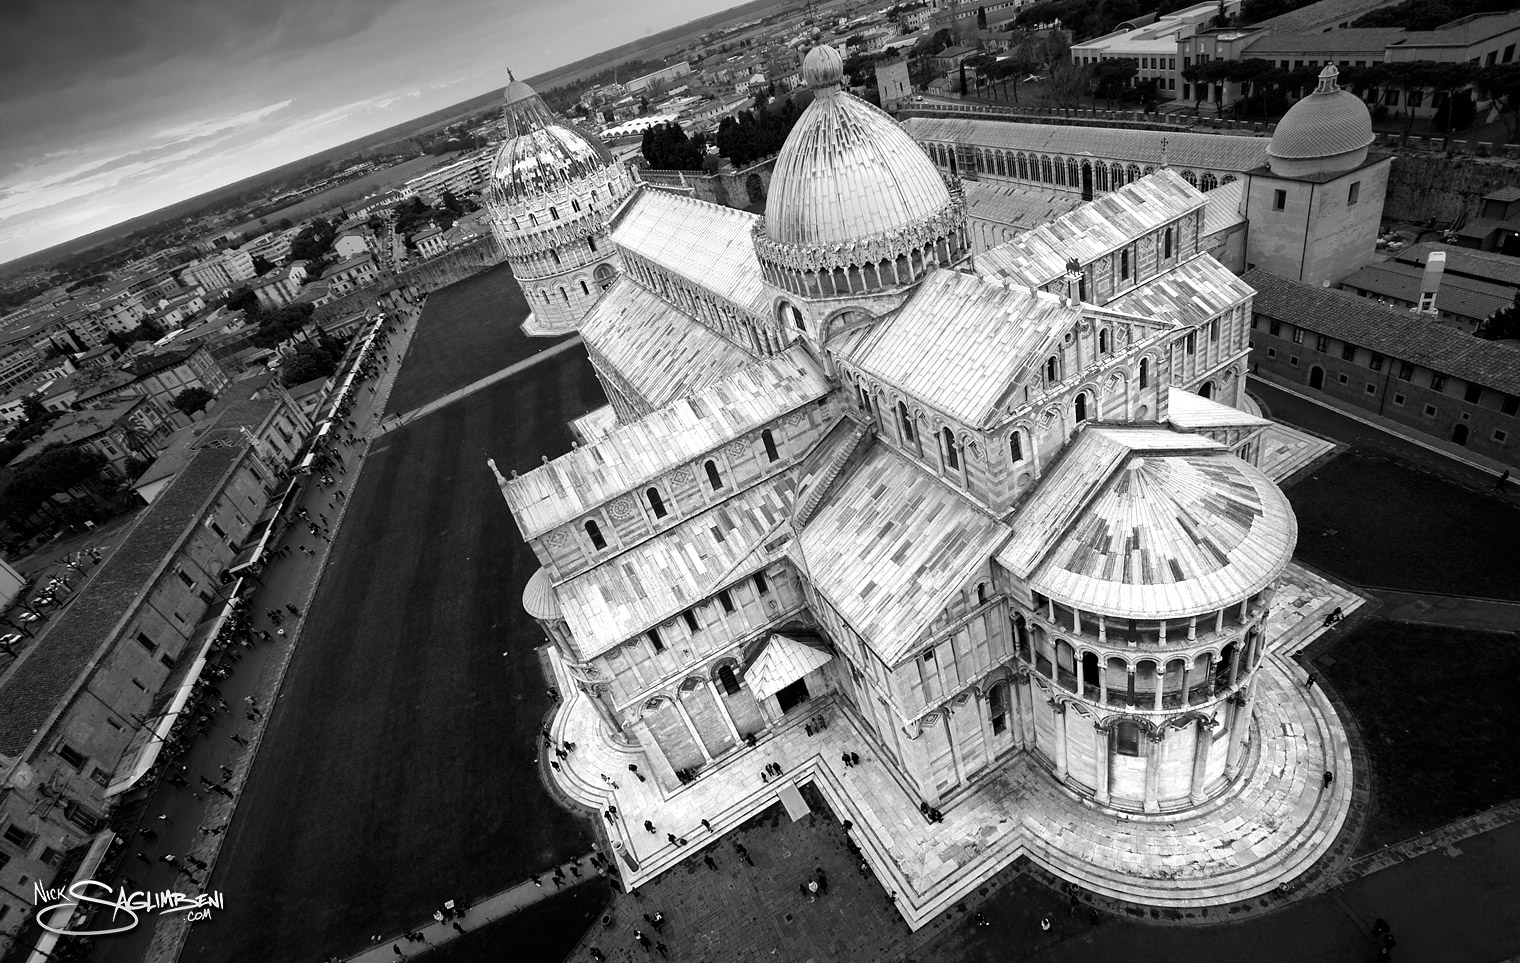 pisa-italy-italia-duomo-cathedral-aerial-by-nick-saglimbeni